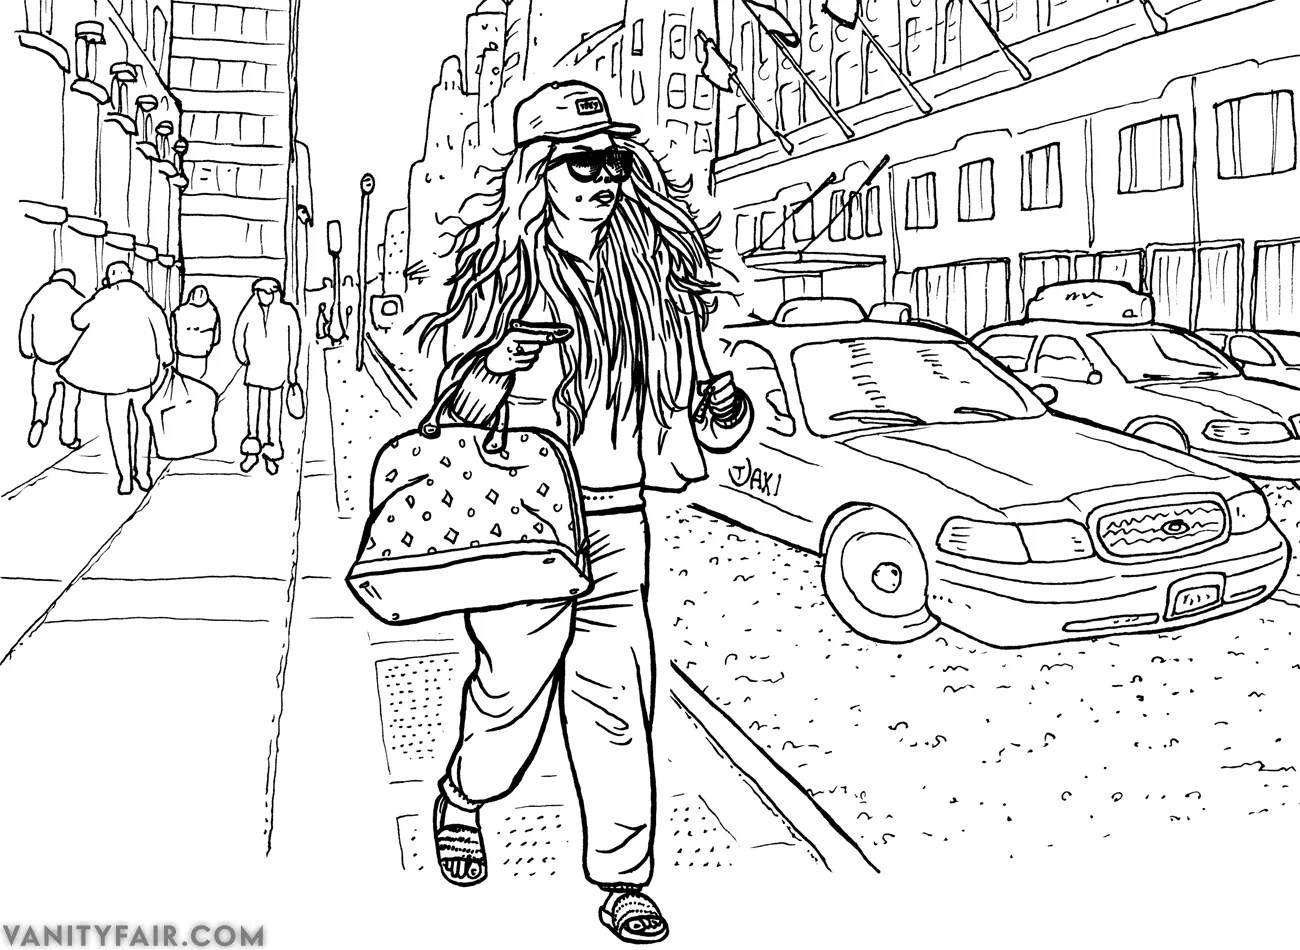 Exclusive: The Definitive Amanda Bynes Coloring Book